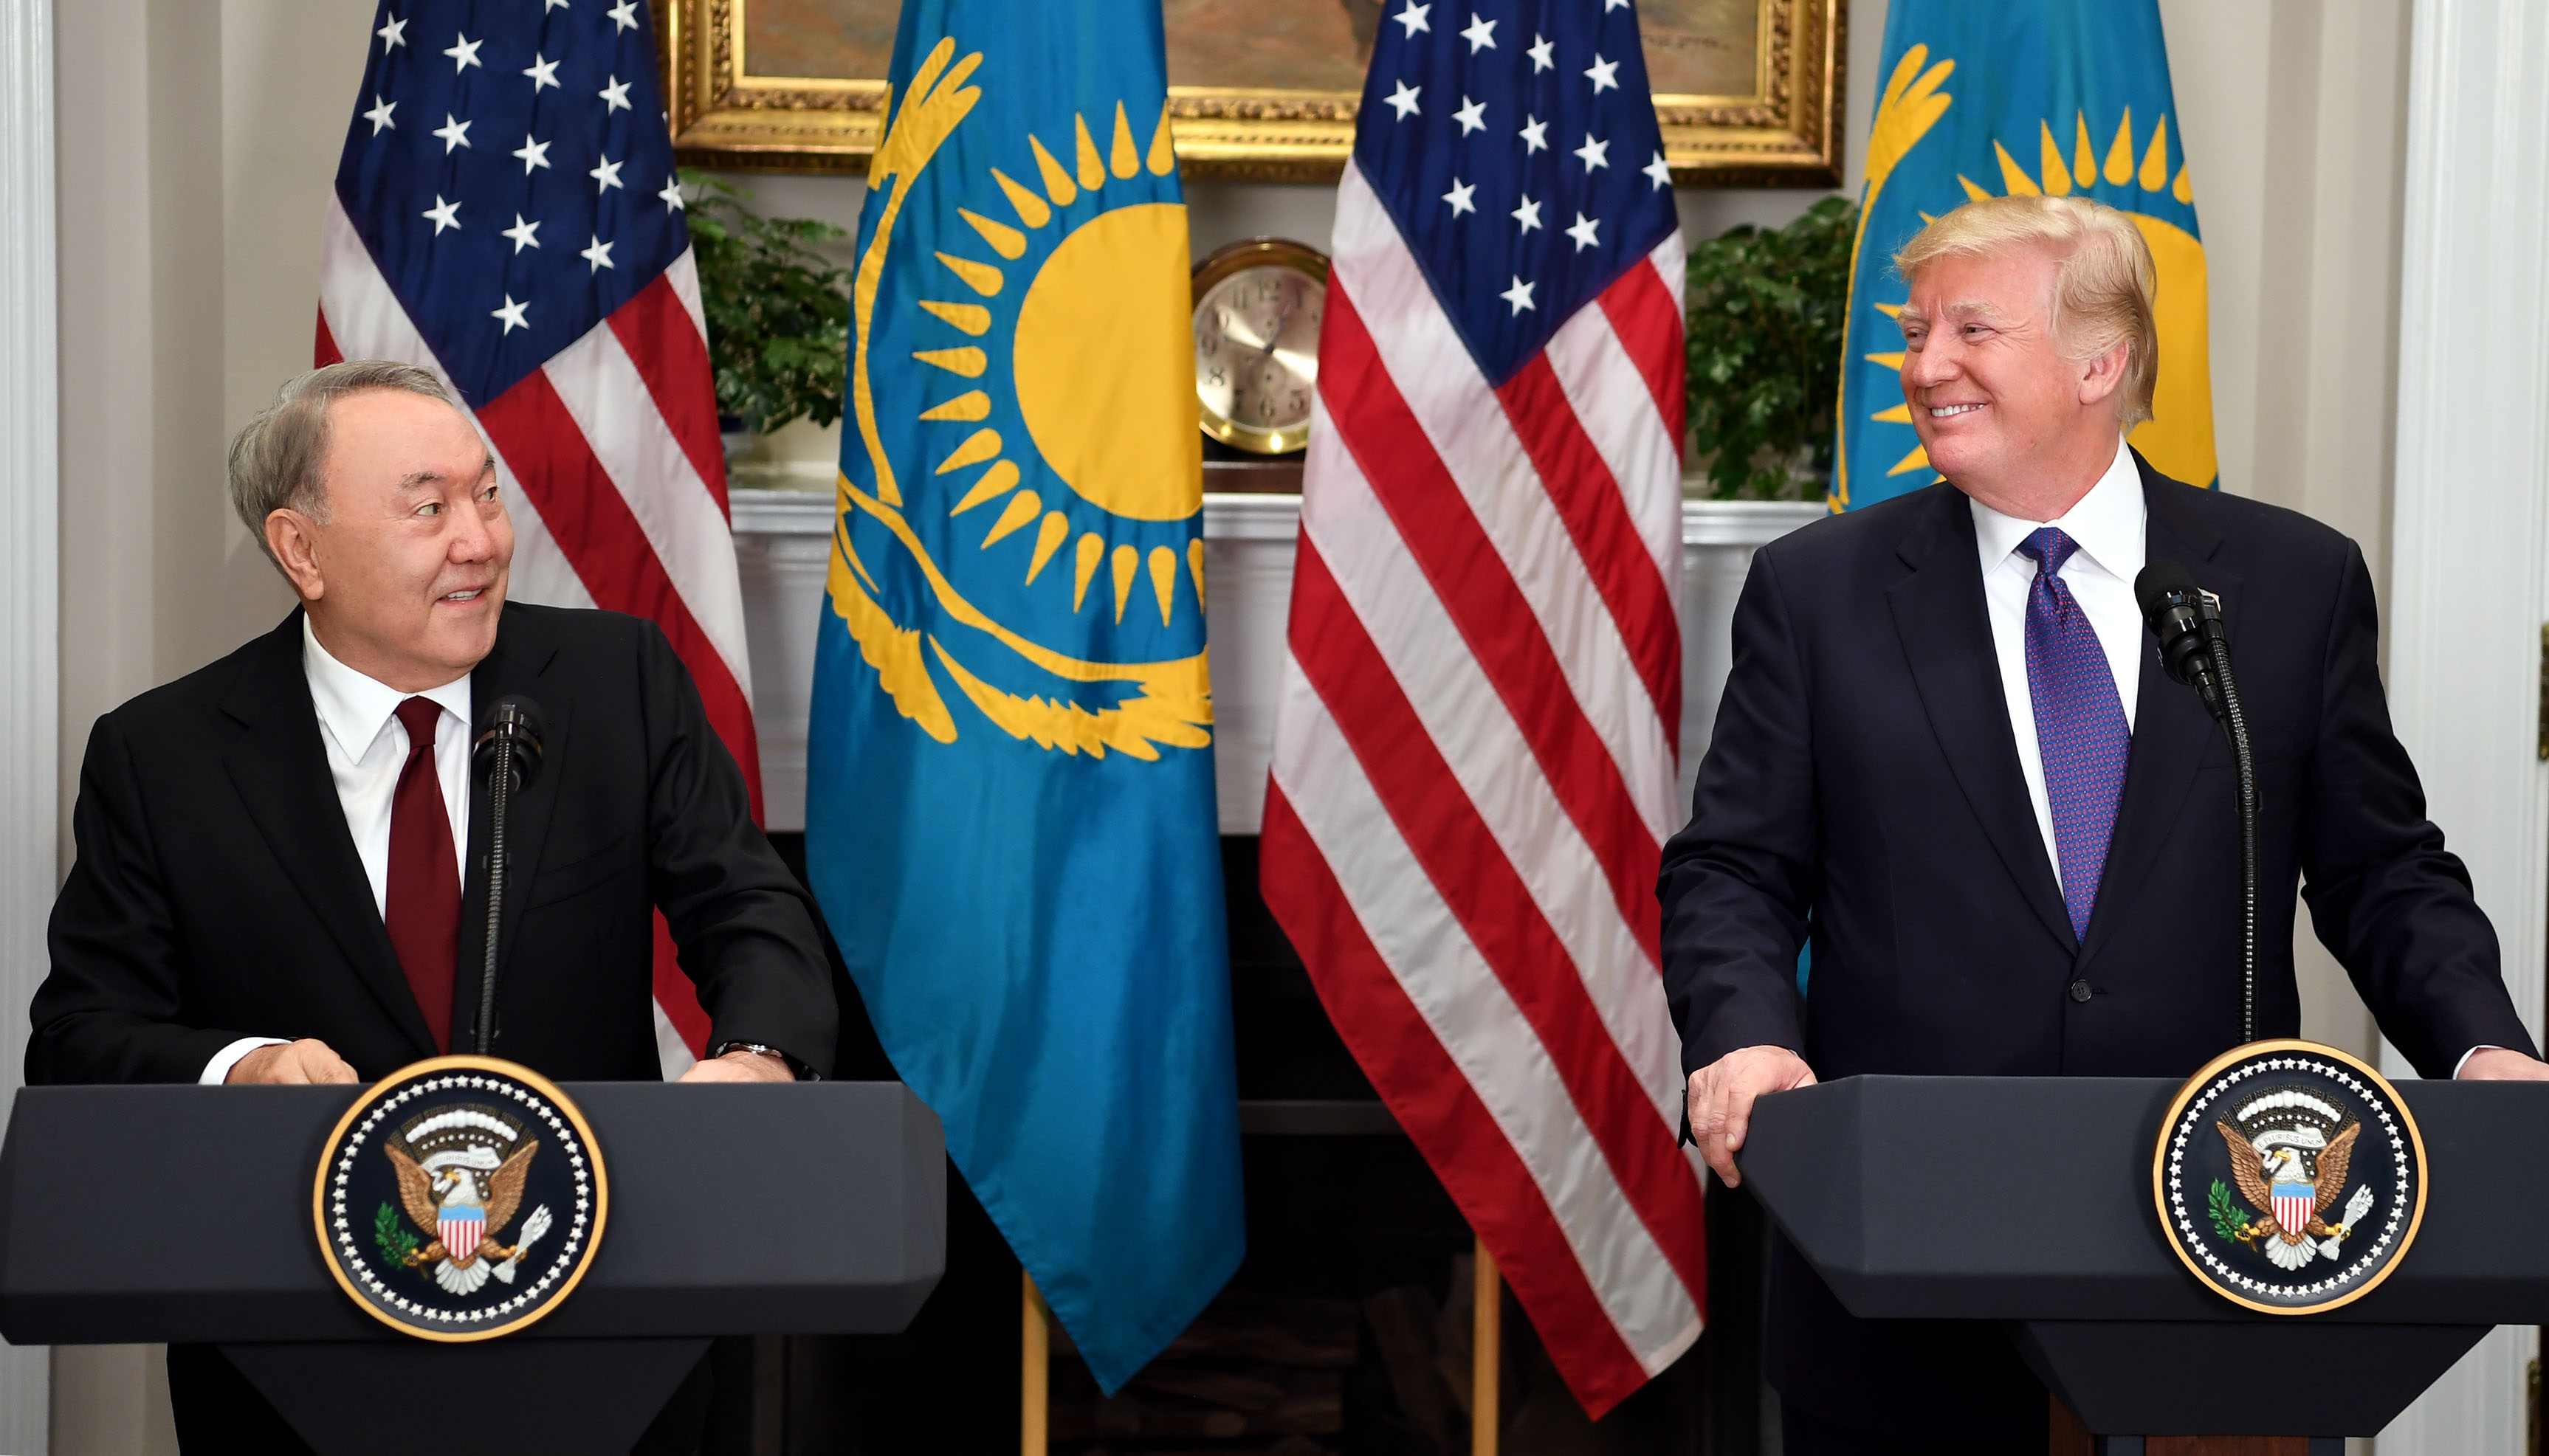 Nursultan Nazarbayev and Donald Trump at a joint press conference at the White House on January 16, 2018. (Kazakhstan Presidential Administration)